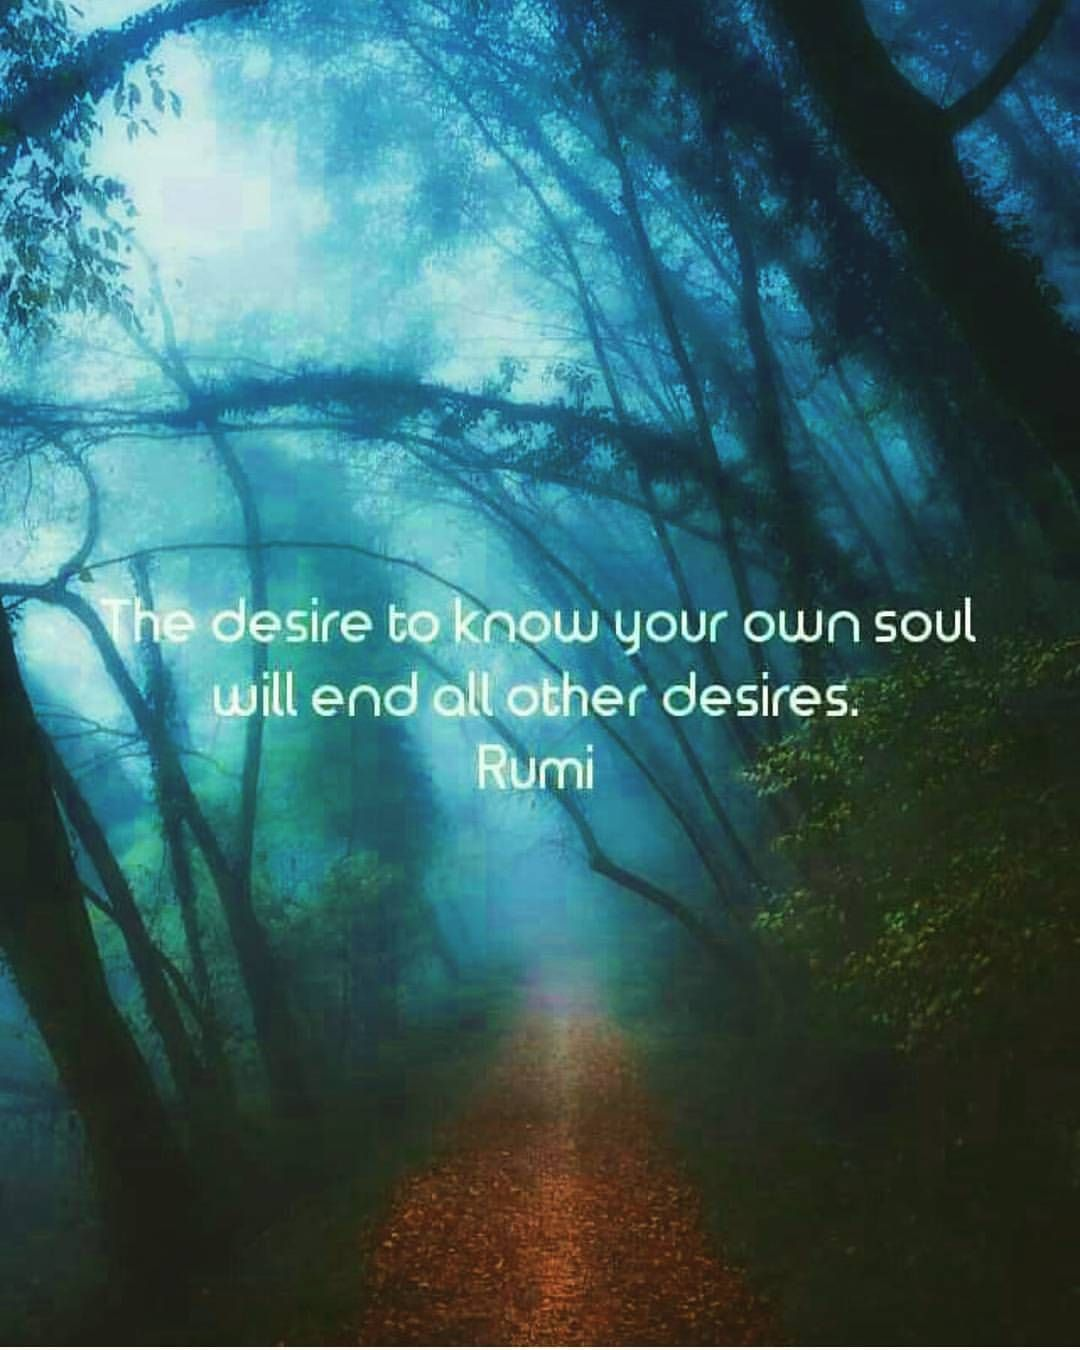 Pin By Stephanie Bonet On Blog Quotes Rumi Quotes Rumi Love Quotes